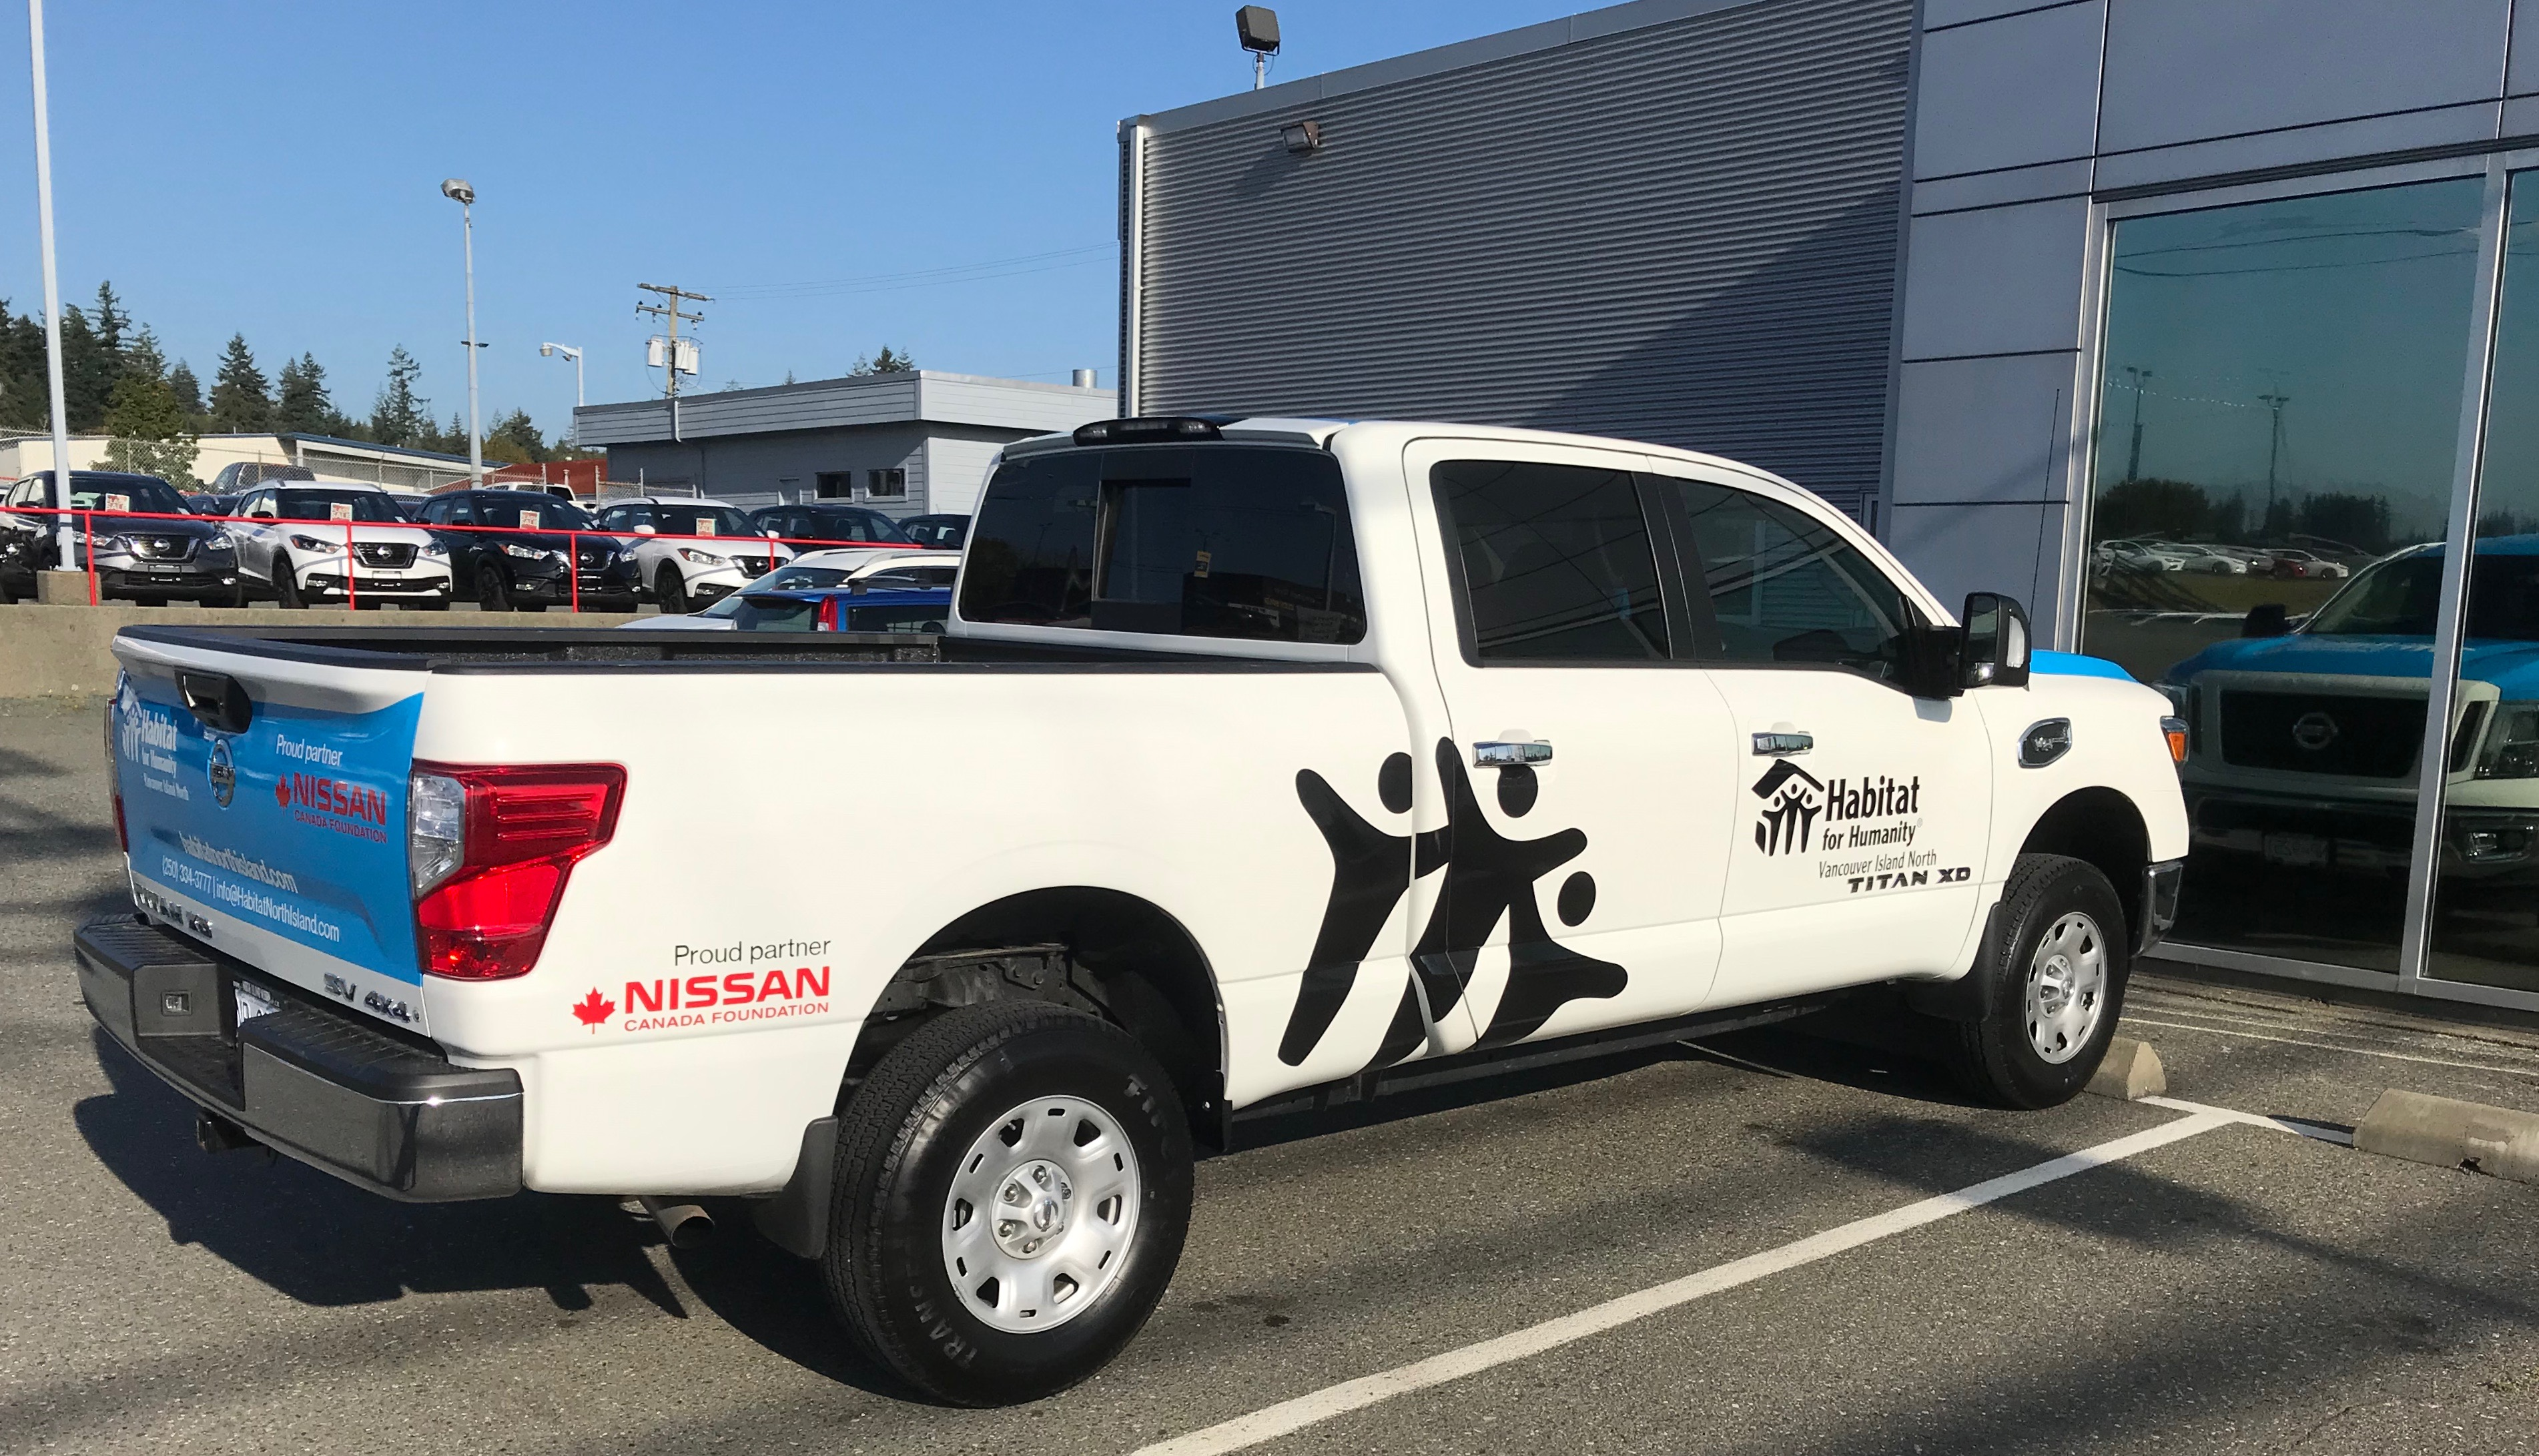 Nissan Campbell River >> Habitat Vancouver Island North Receives New Truck My